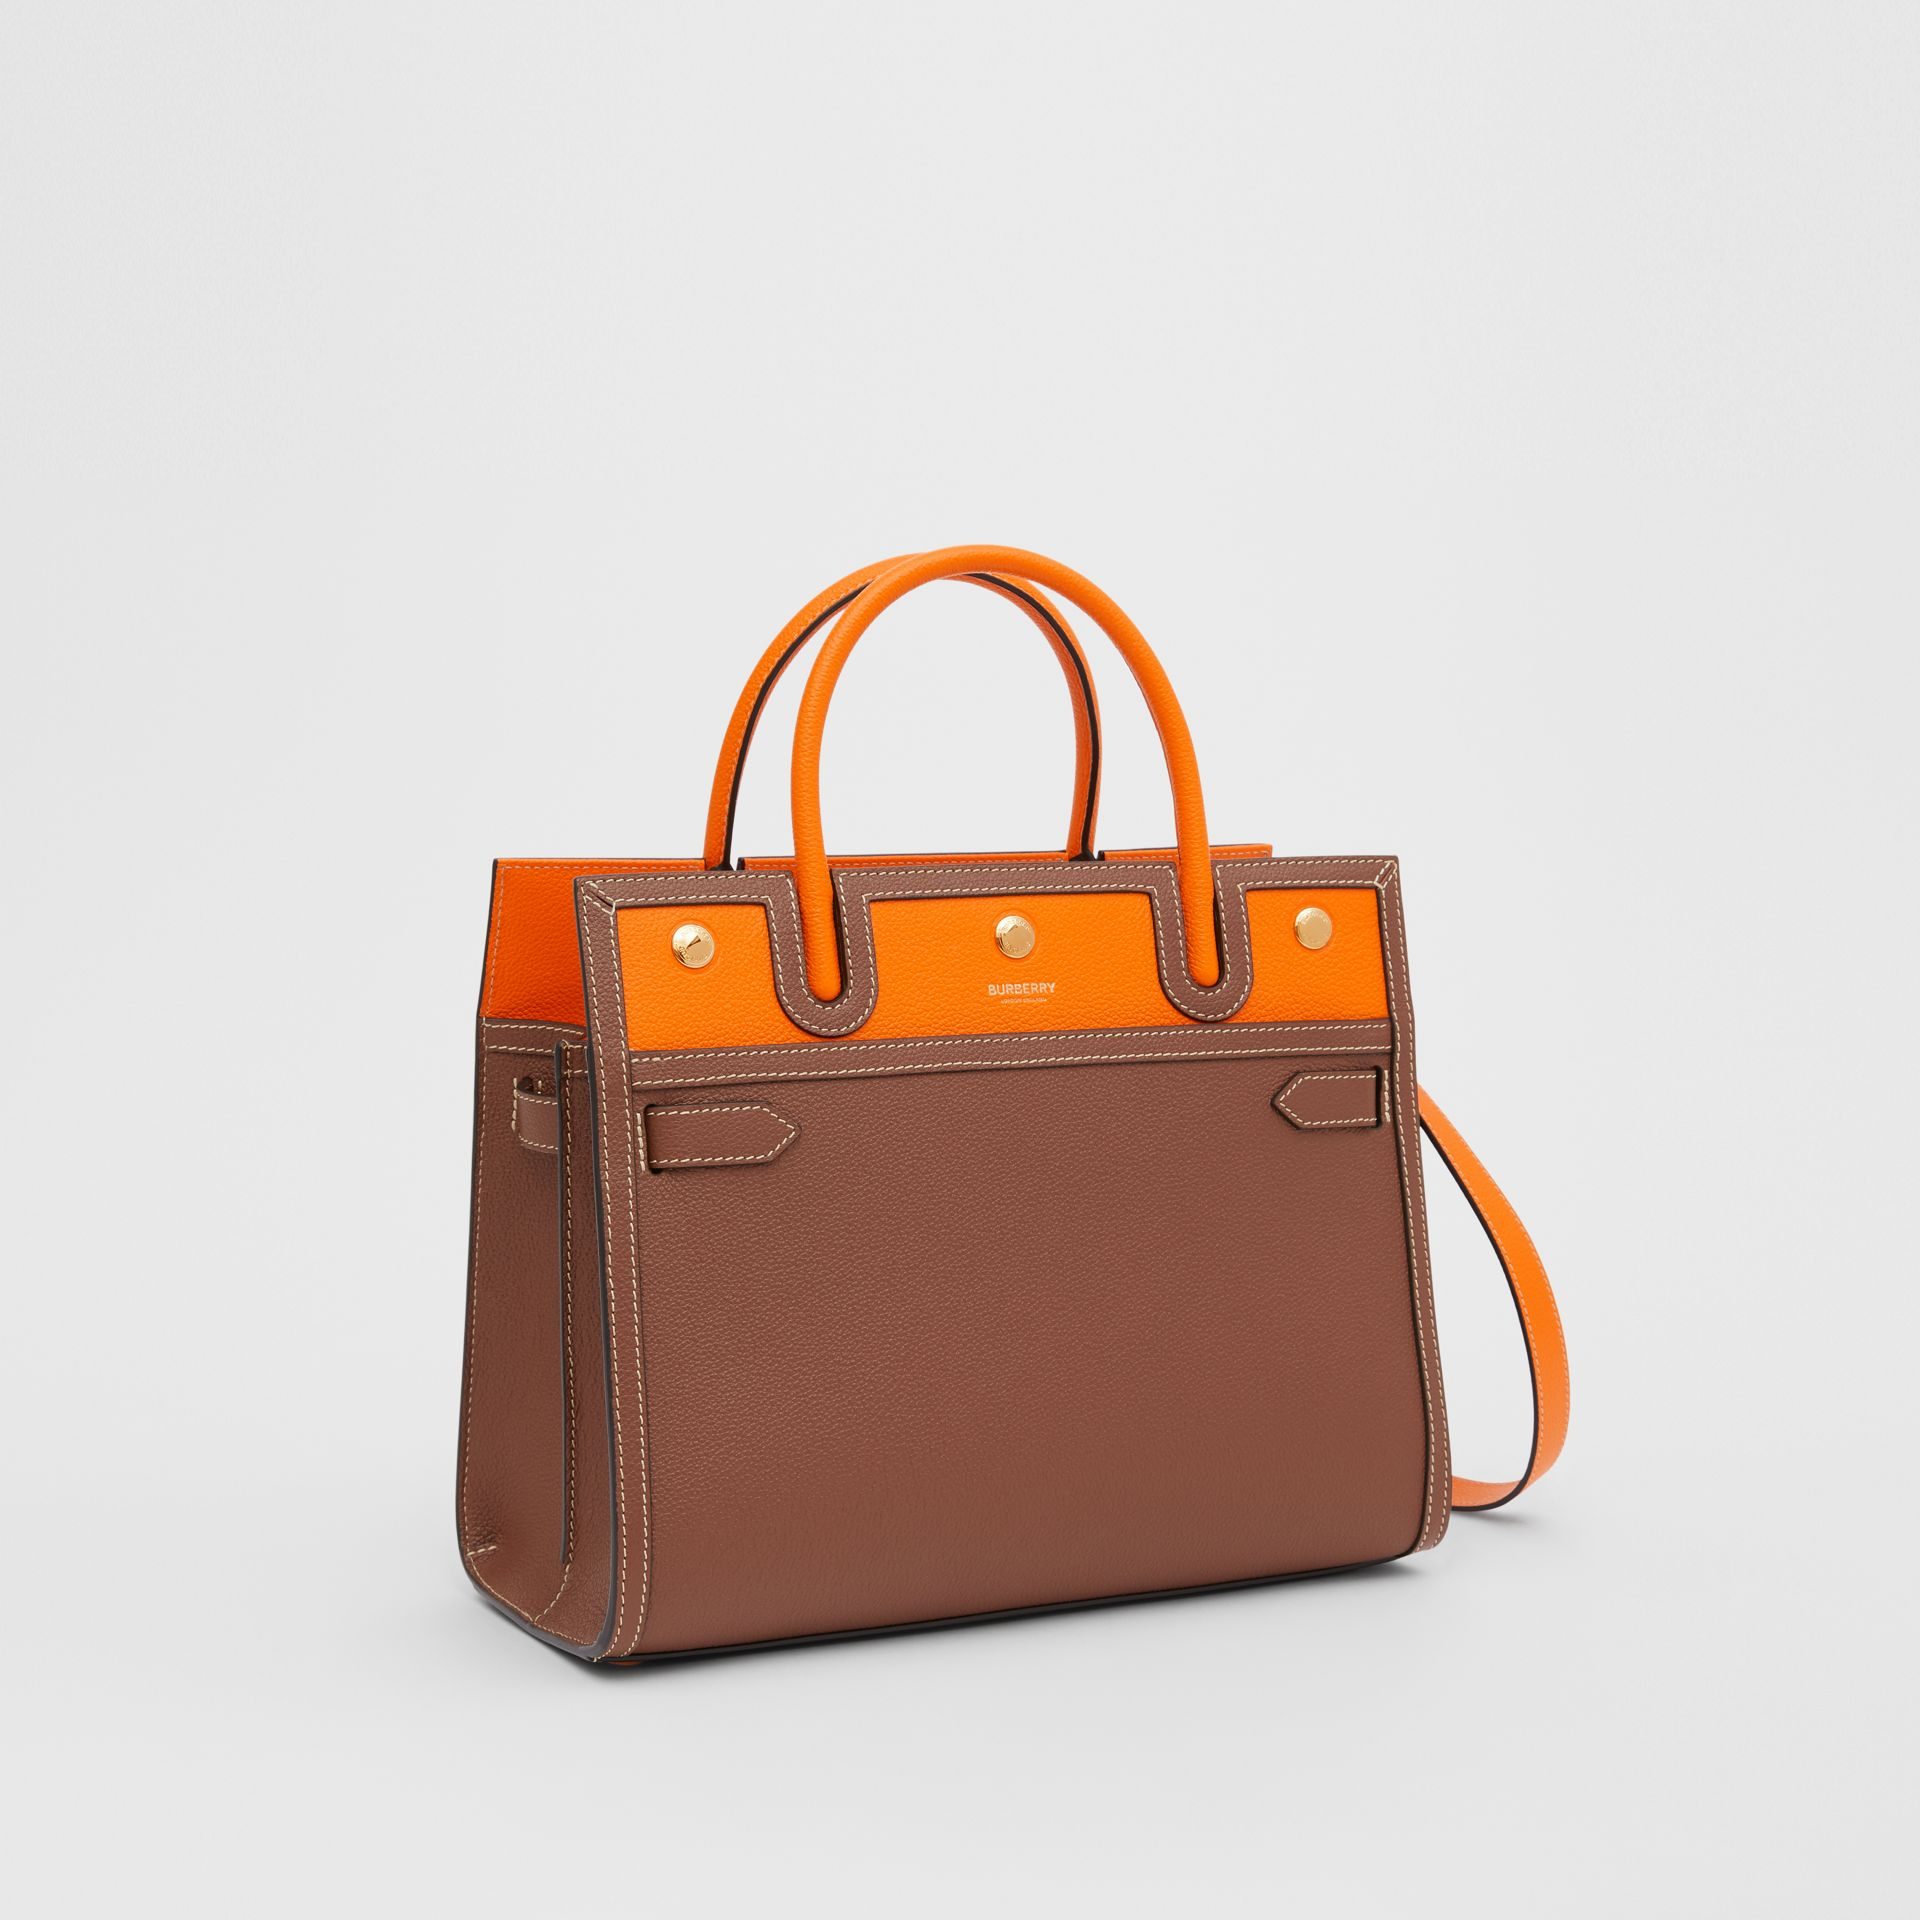 Small Leather Two-handle Title Bag in Tan/bright Orange - Women | Burberry - gallery image 6